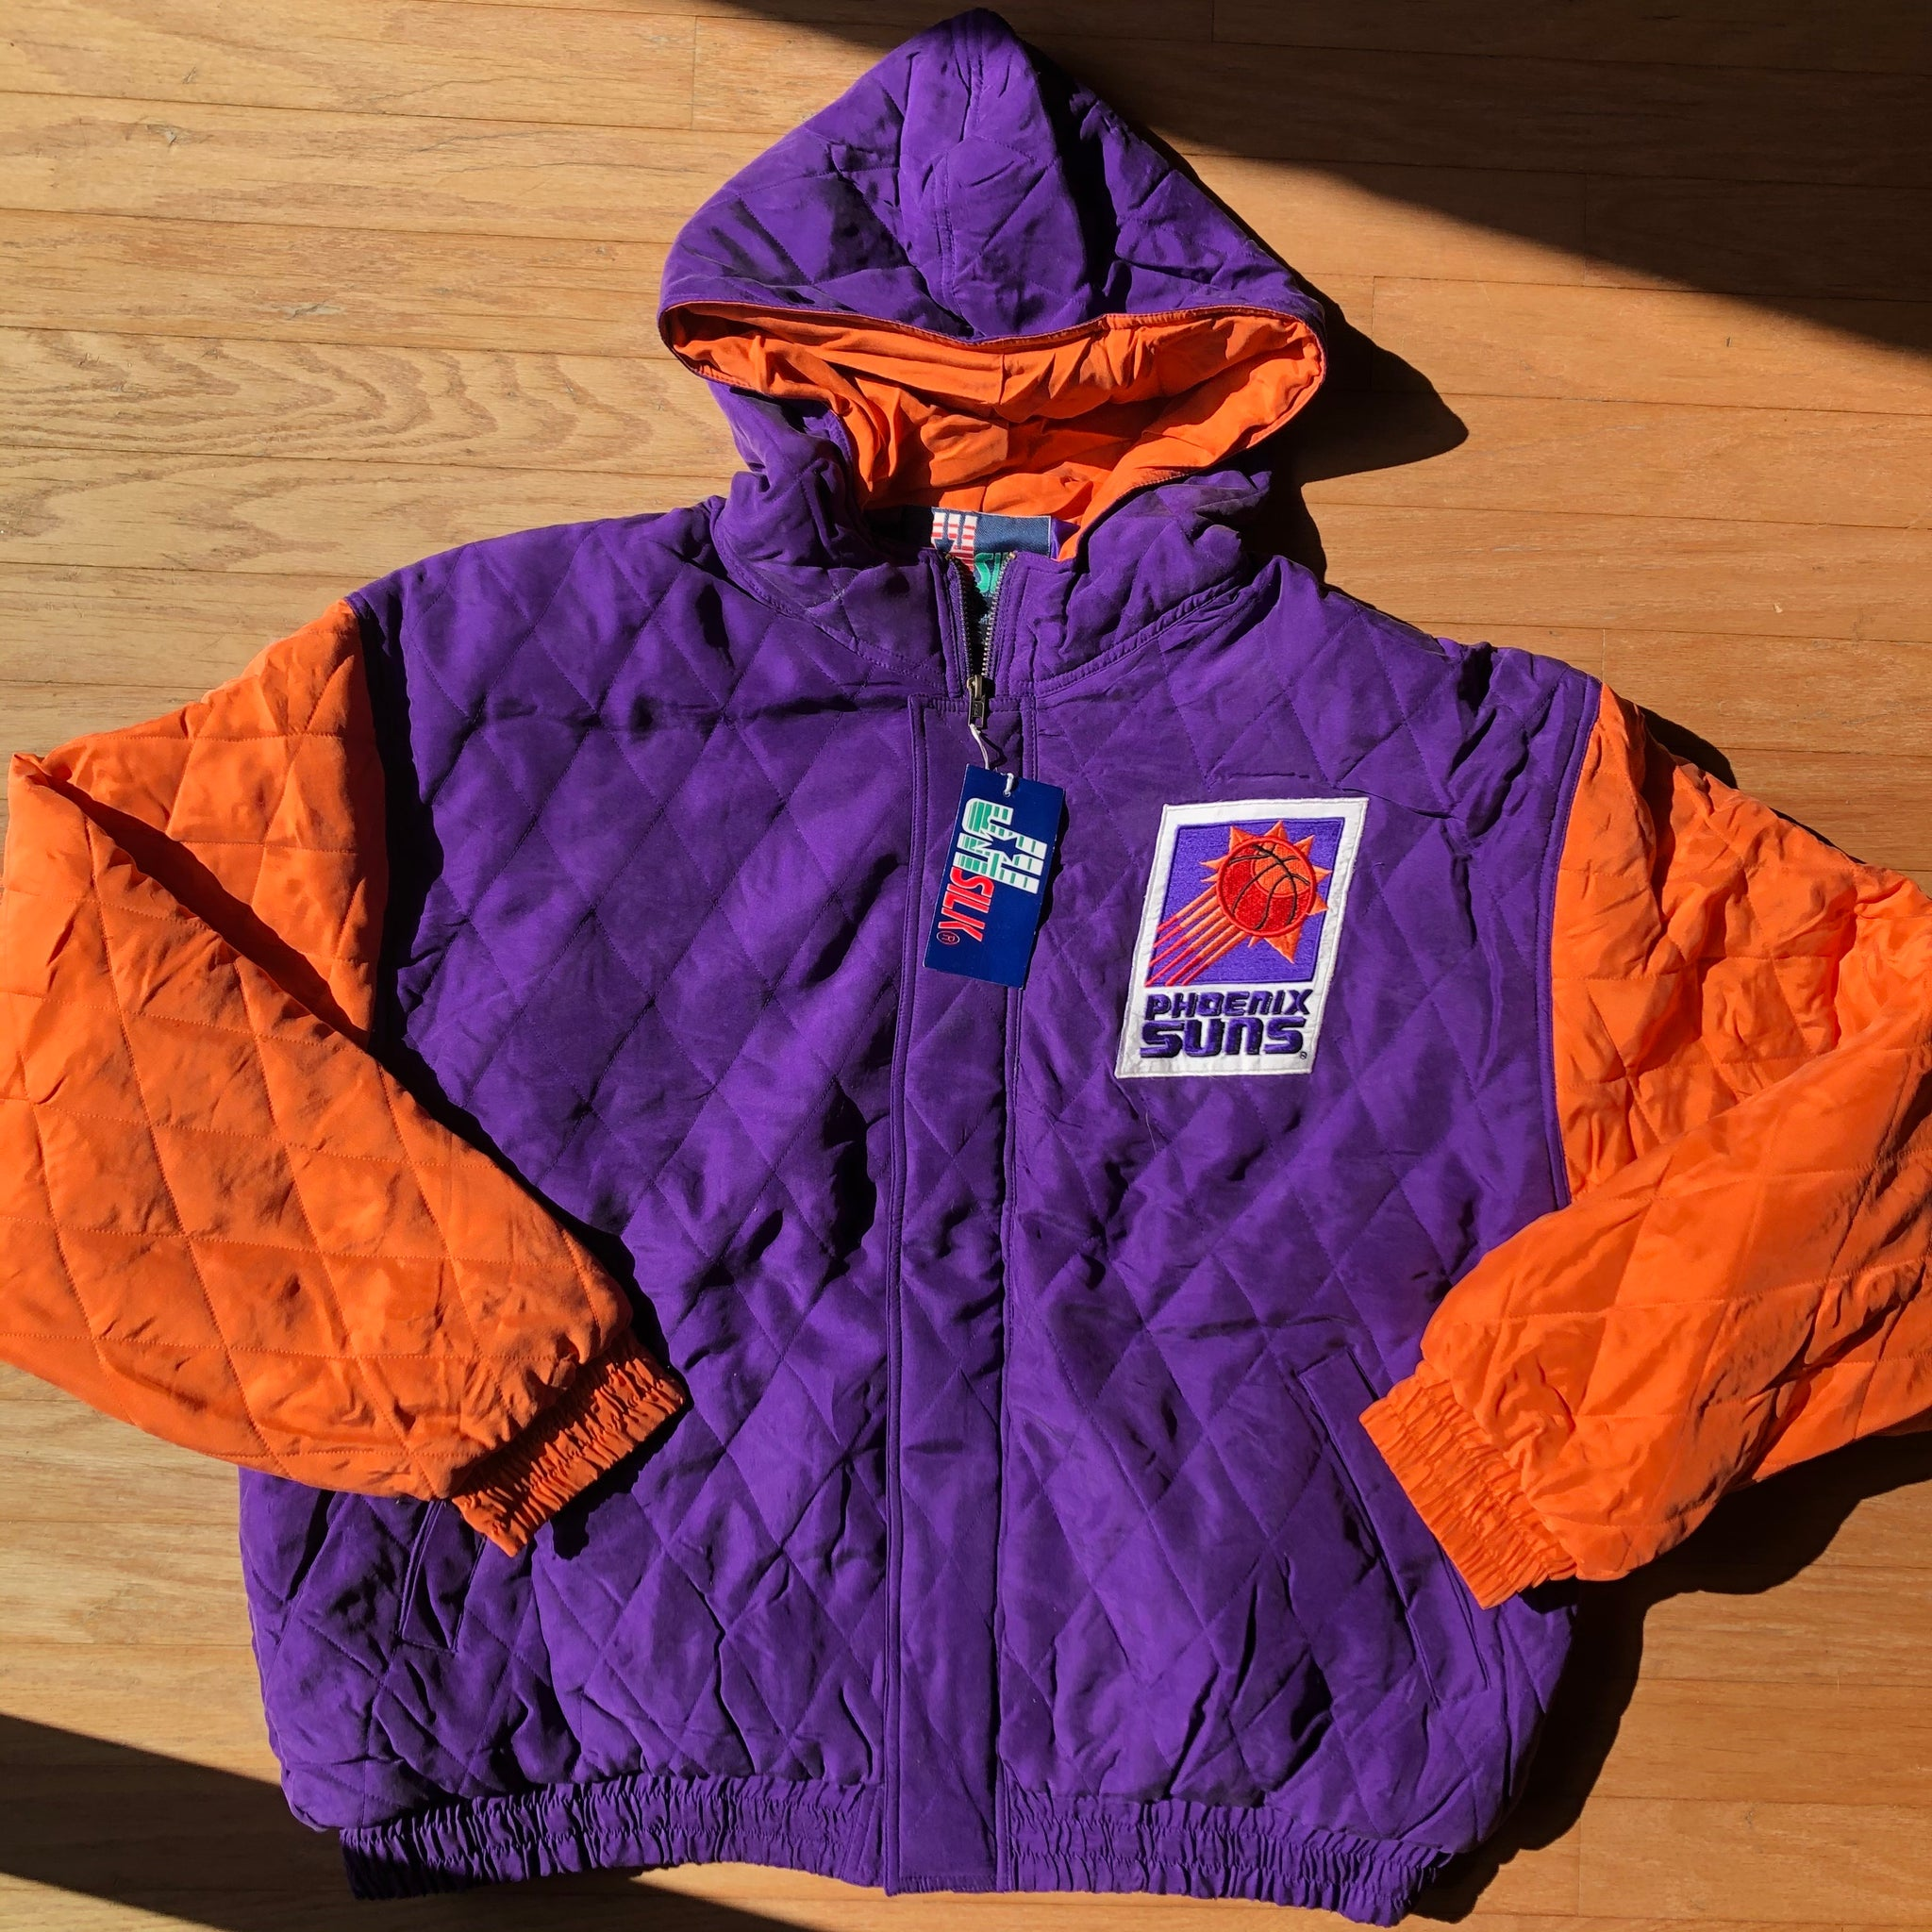 New Old Stock Vintage Suns Jacket